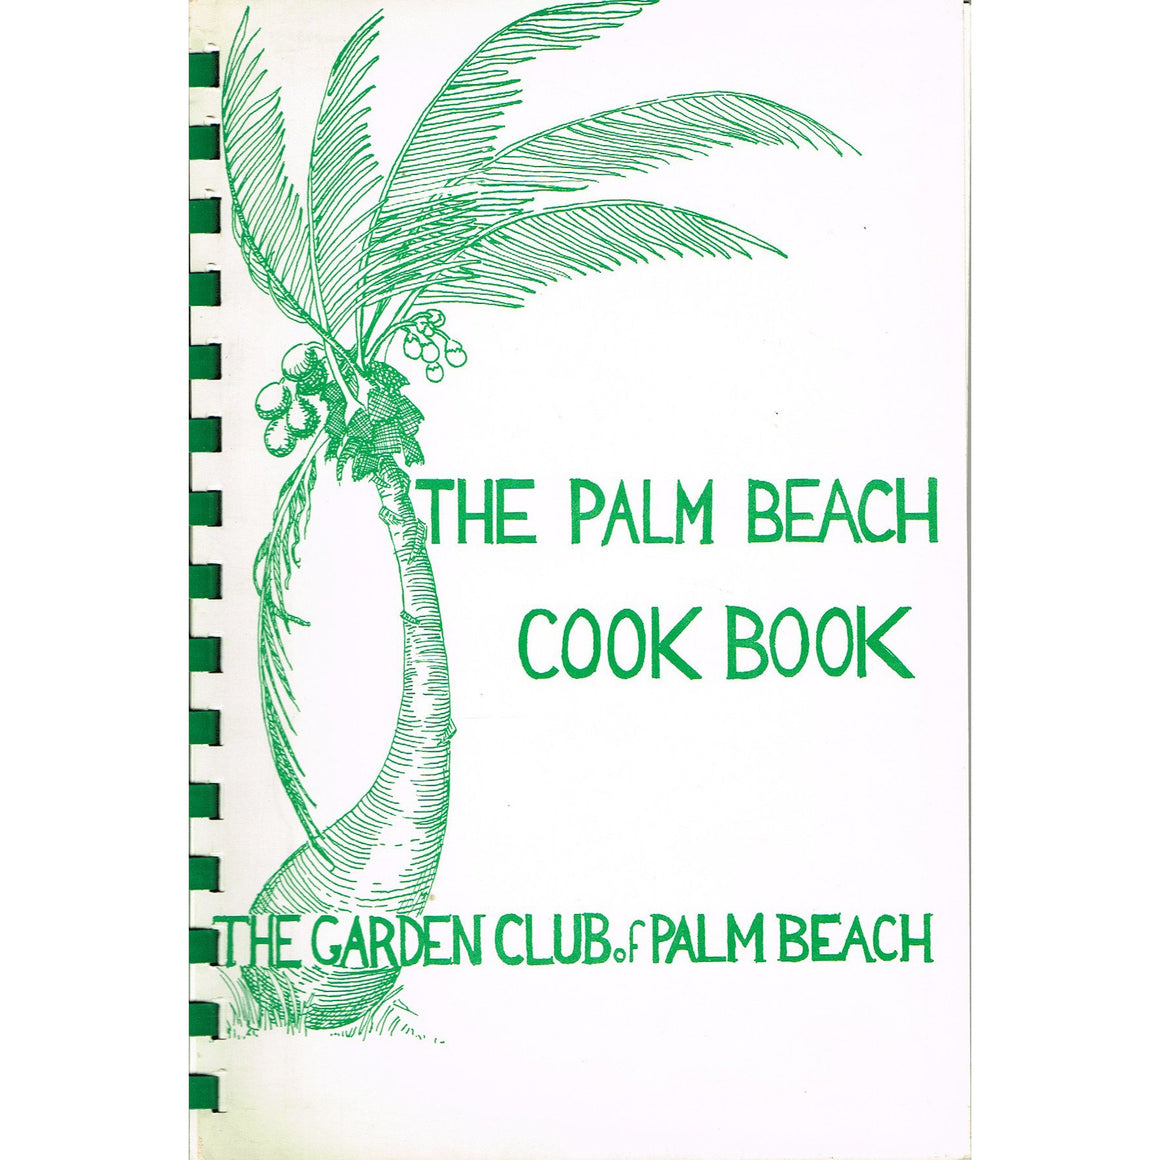 The Palm Beach Cook Book